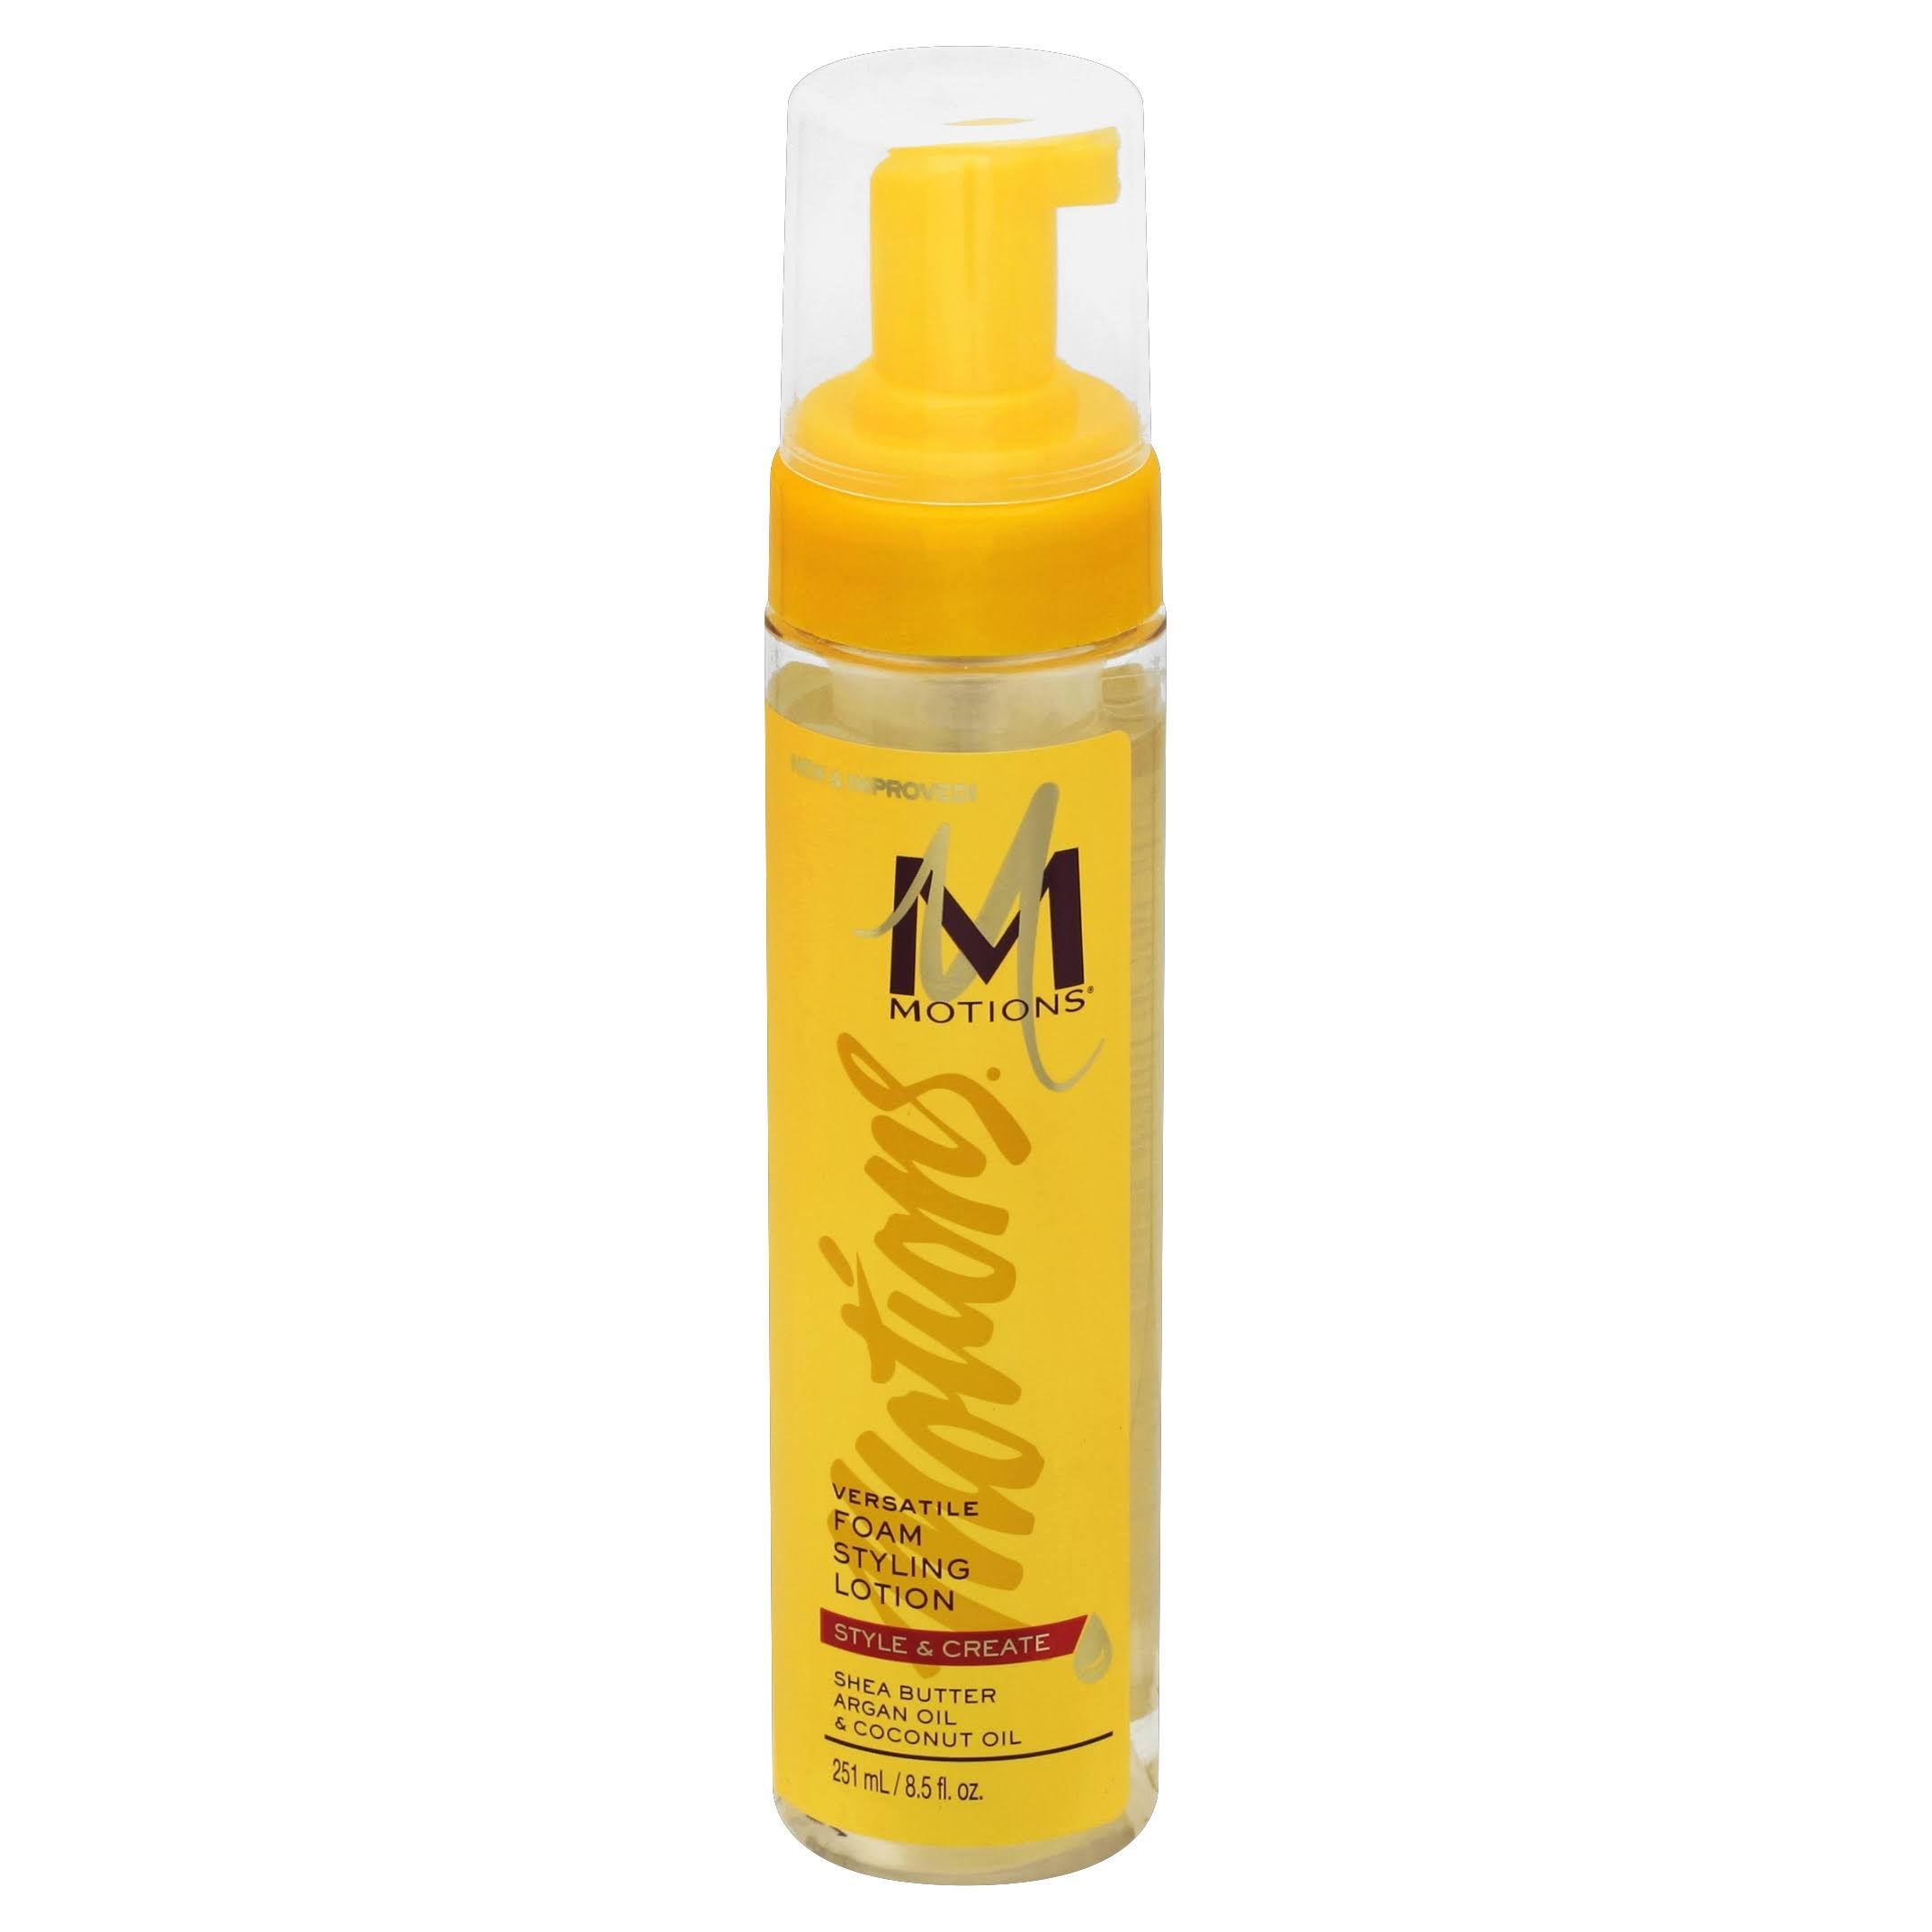 Motions Professional Hair Products Versatile Foam Styling Lotion - 8.5oz